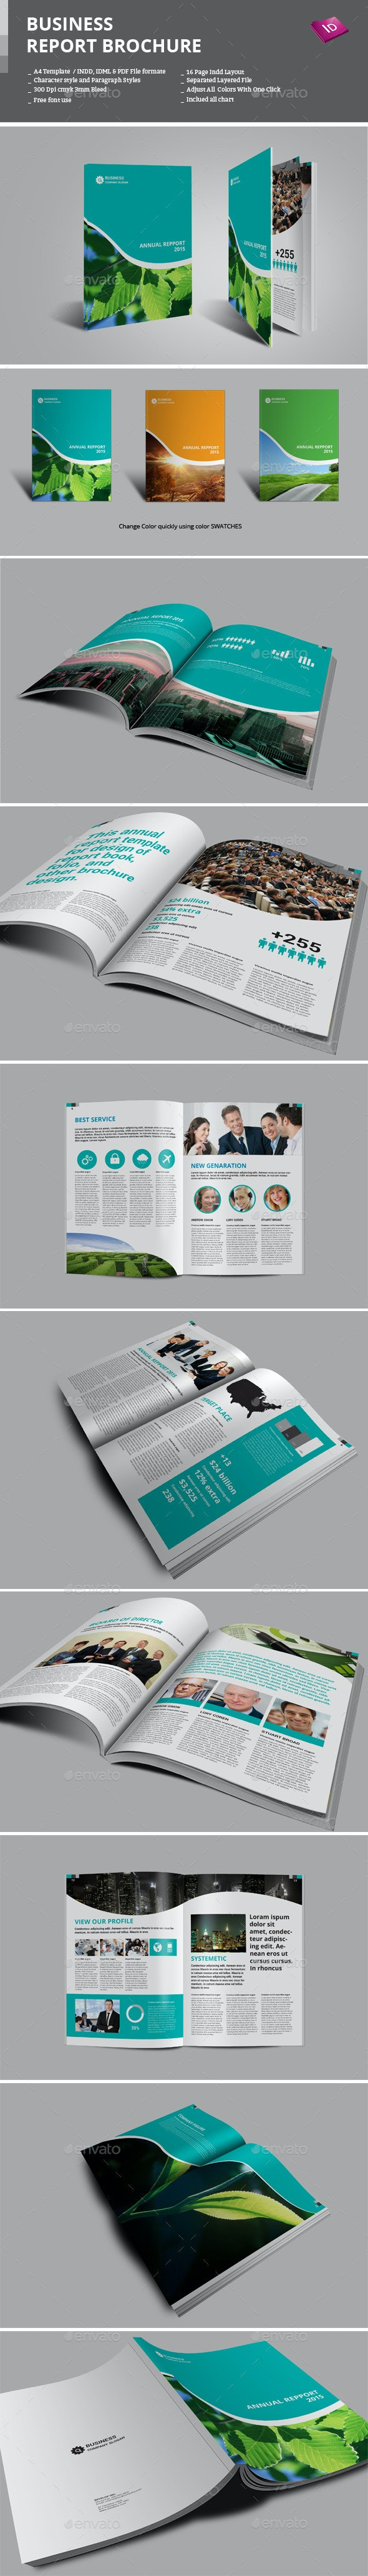 Business Report Brochure - Informational Brochures